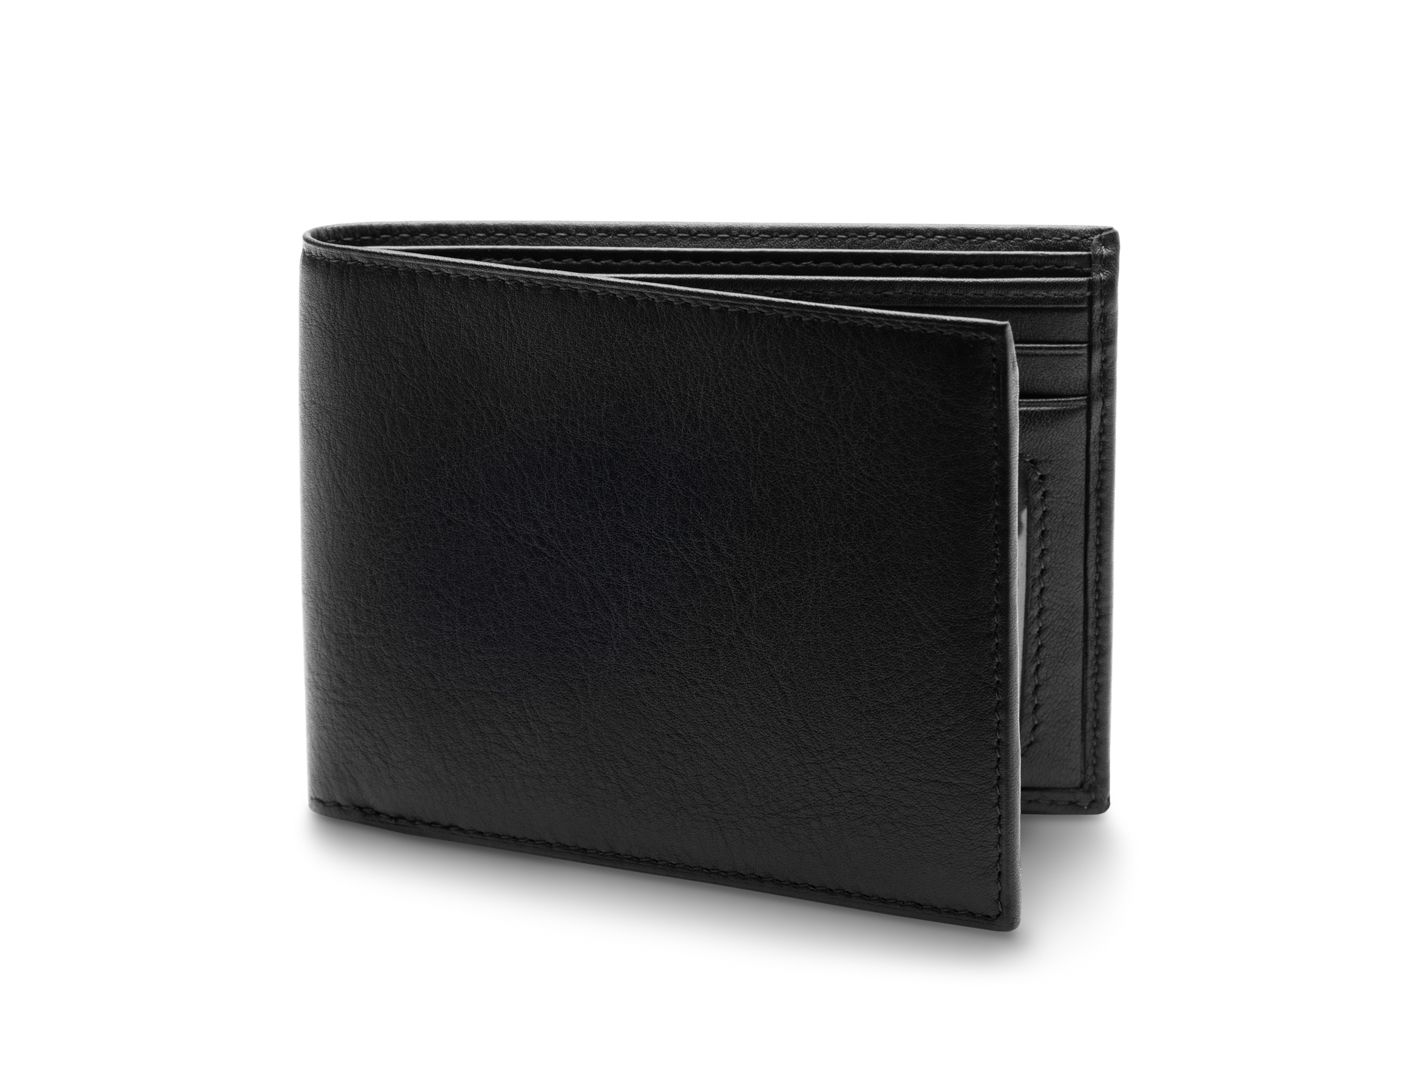 BOSCA 1911 EXECUTIVE I.D. WALLET IN BLACK DOLCE LEATHER